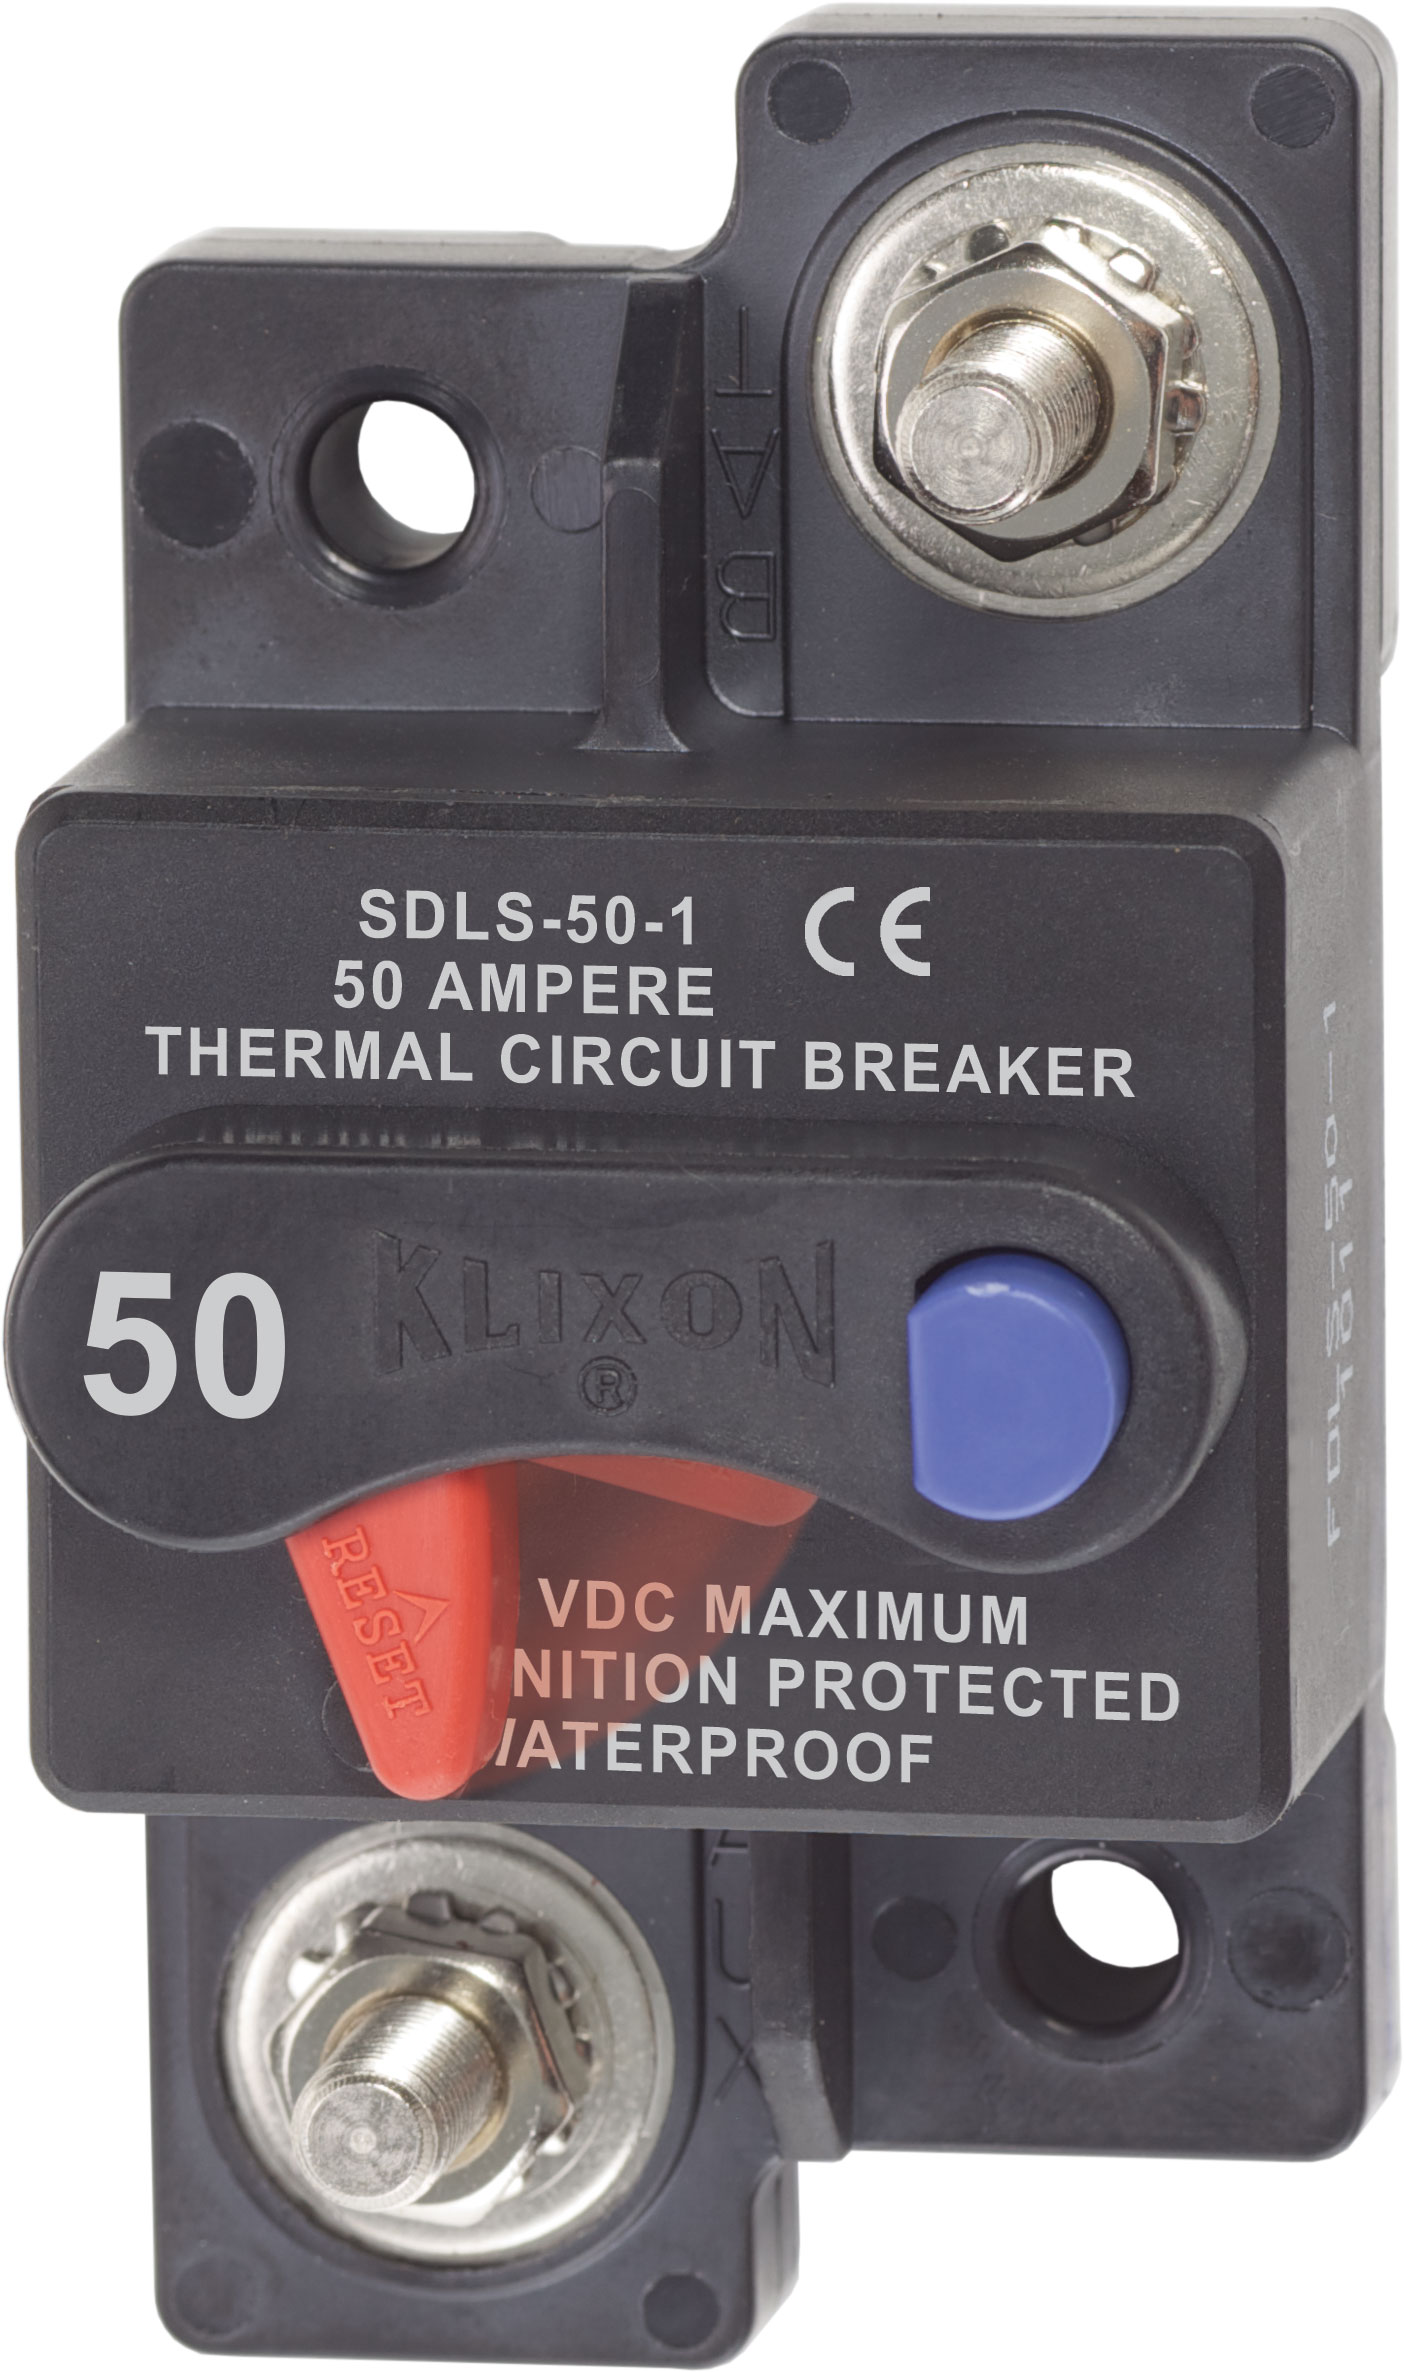 Amp 12v Dc Circuit Breaker Replace Fuse 50a 12vdcin Circuit Breakers